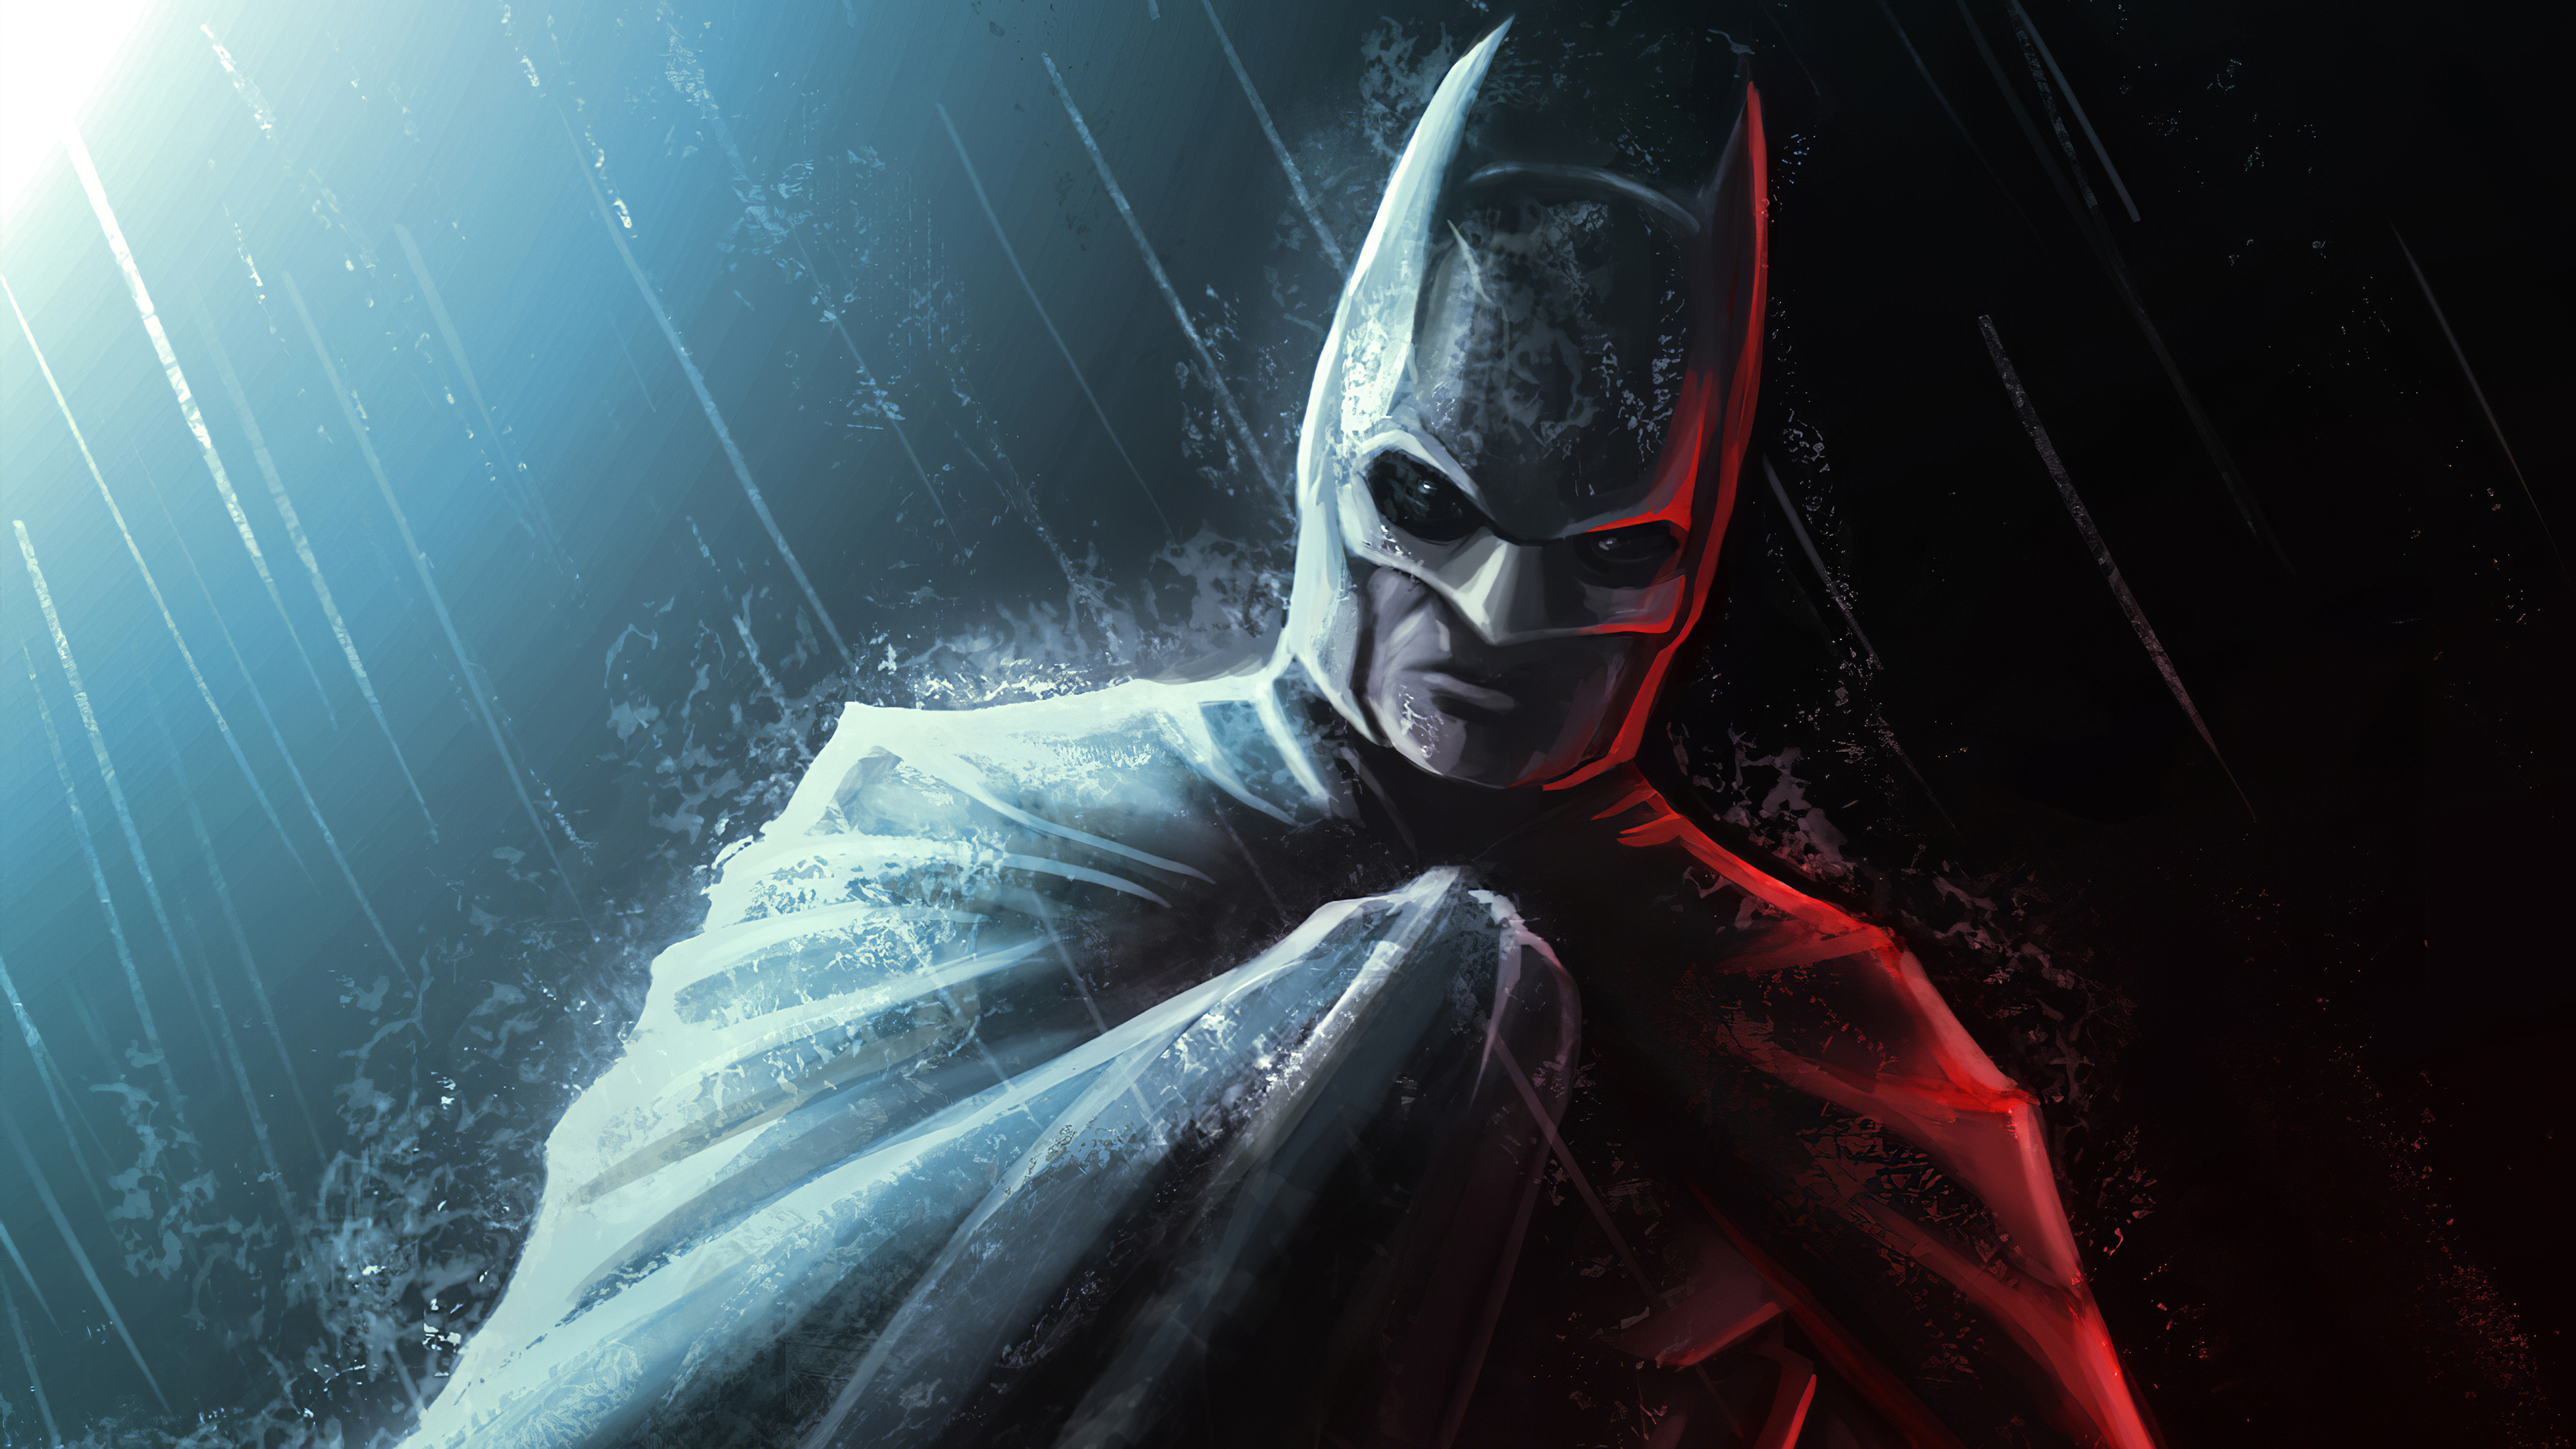 batman darkness 1572368860 - Batman Darkness - superheroes wallpapers, hd-wallpapers, digital art wallpapers, batman wallpapers, artwork wallpapers, artstation wallpapers, artist wallpapers, 4k-wallpapers